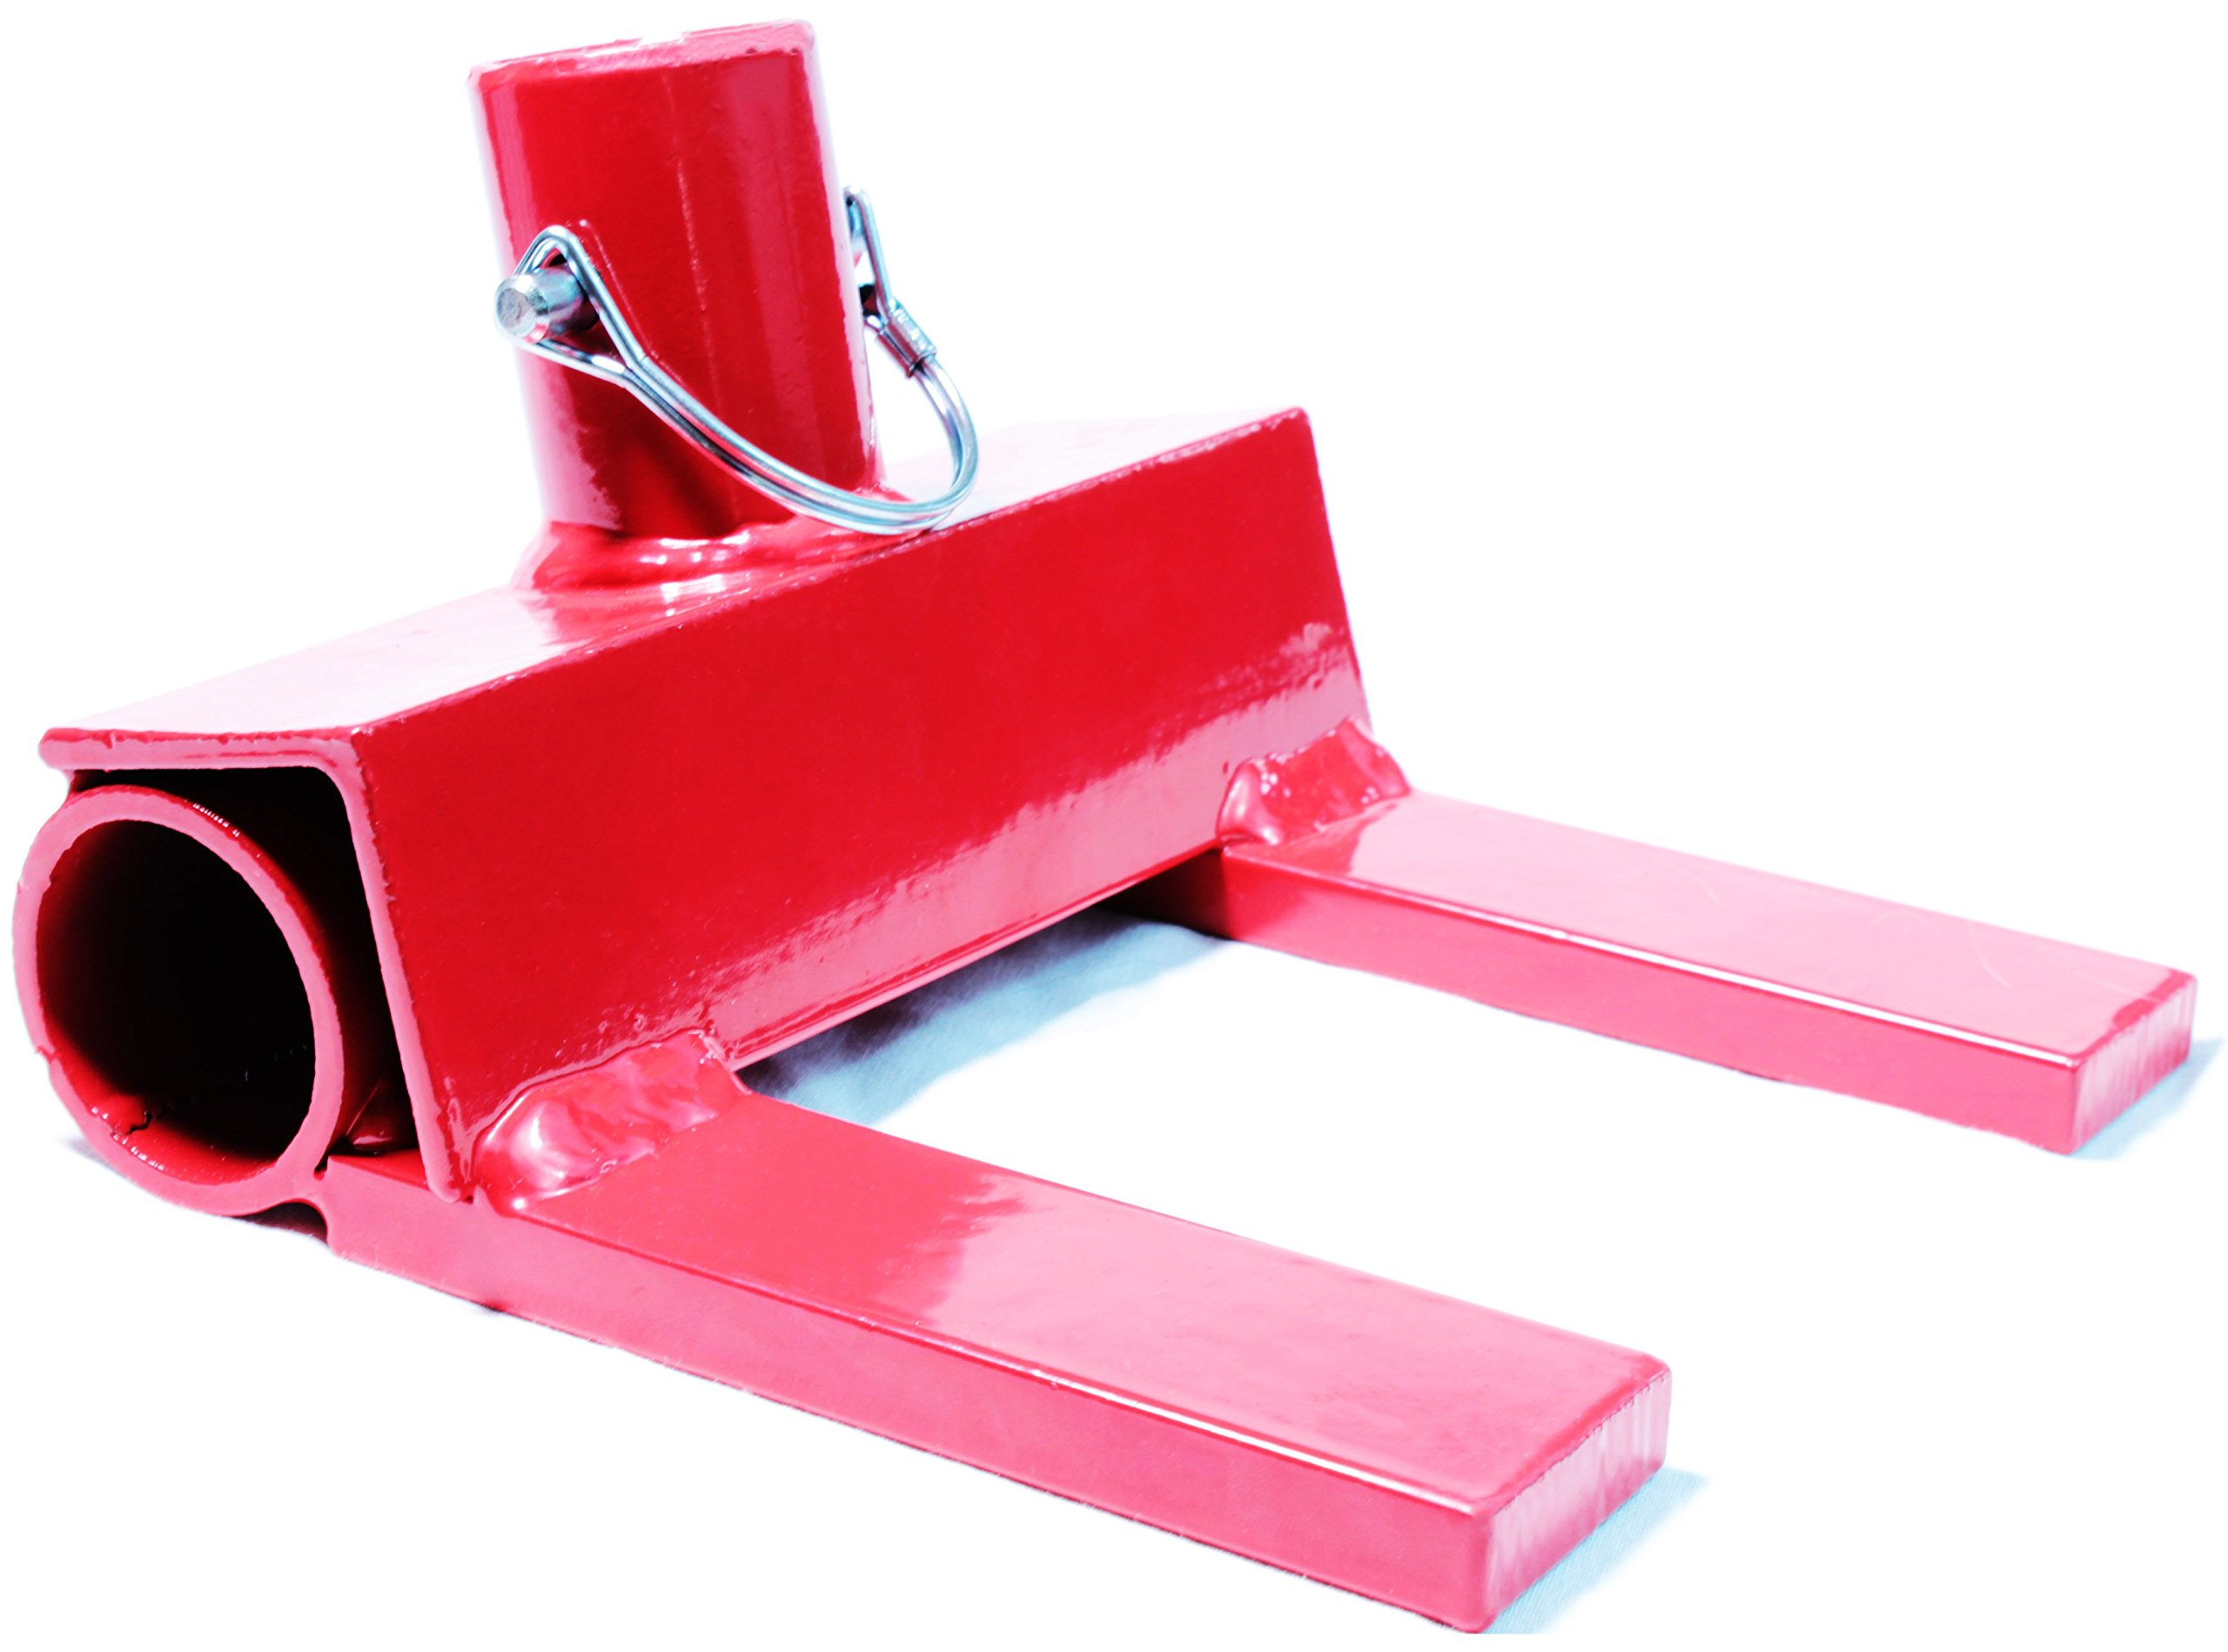 Pallet Buster | Deck Wrecker - Best Wrecking Bar for Breaking Pallets - Steel Head - 2 Secure Locking Pins - Red - Molomax